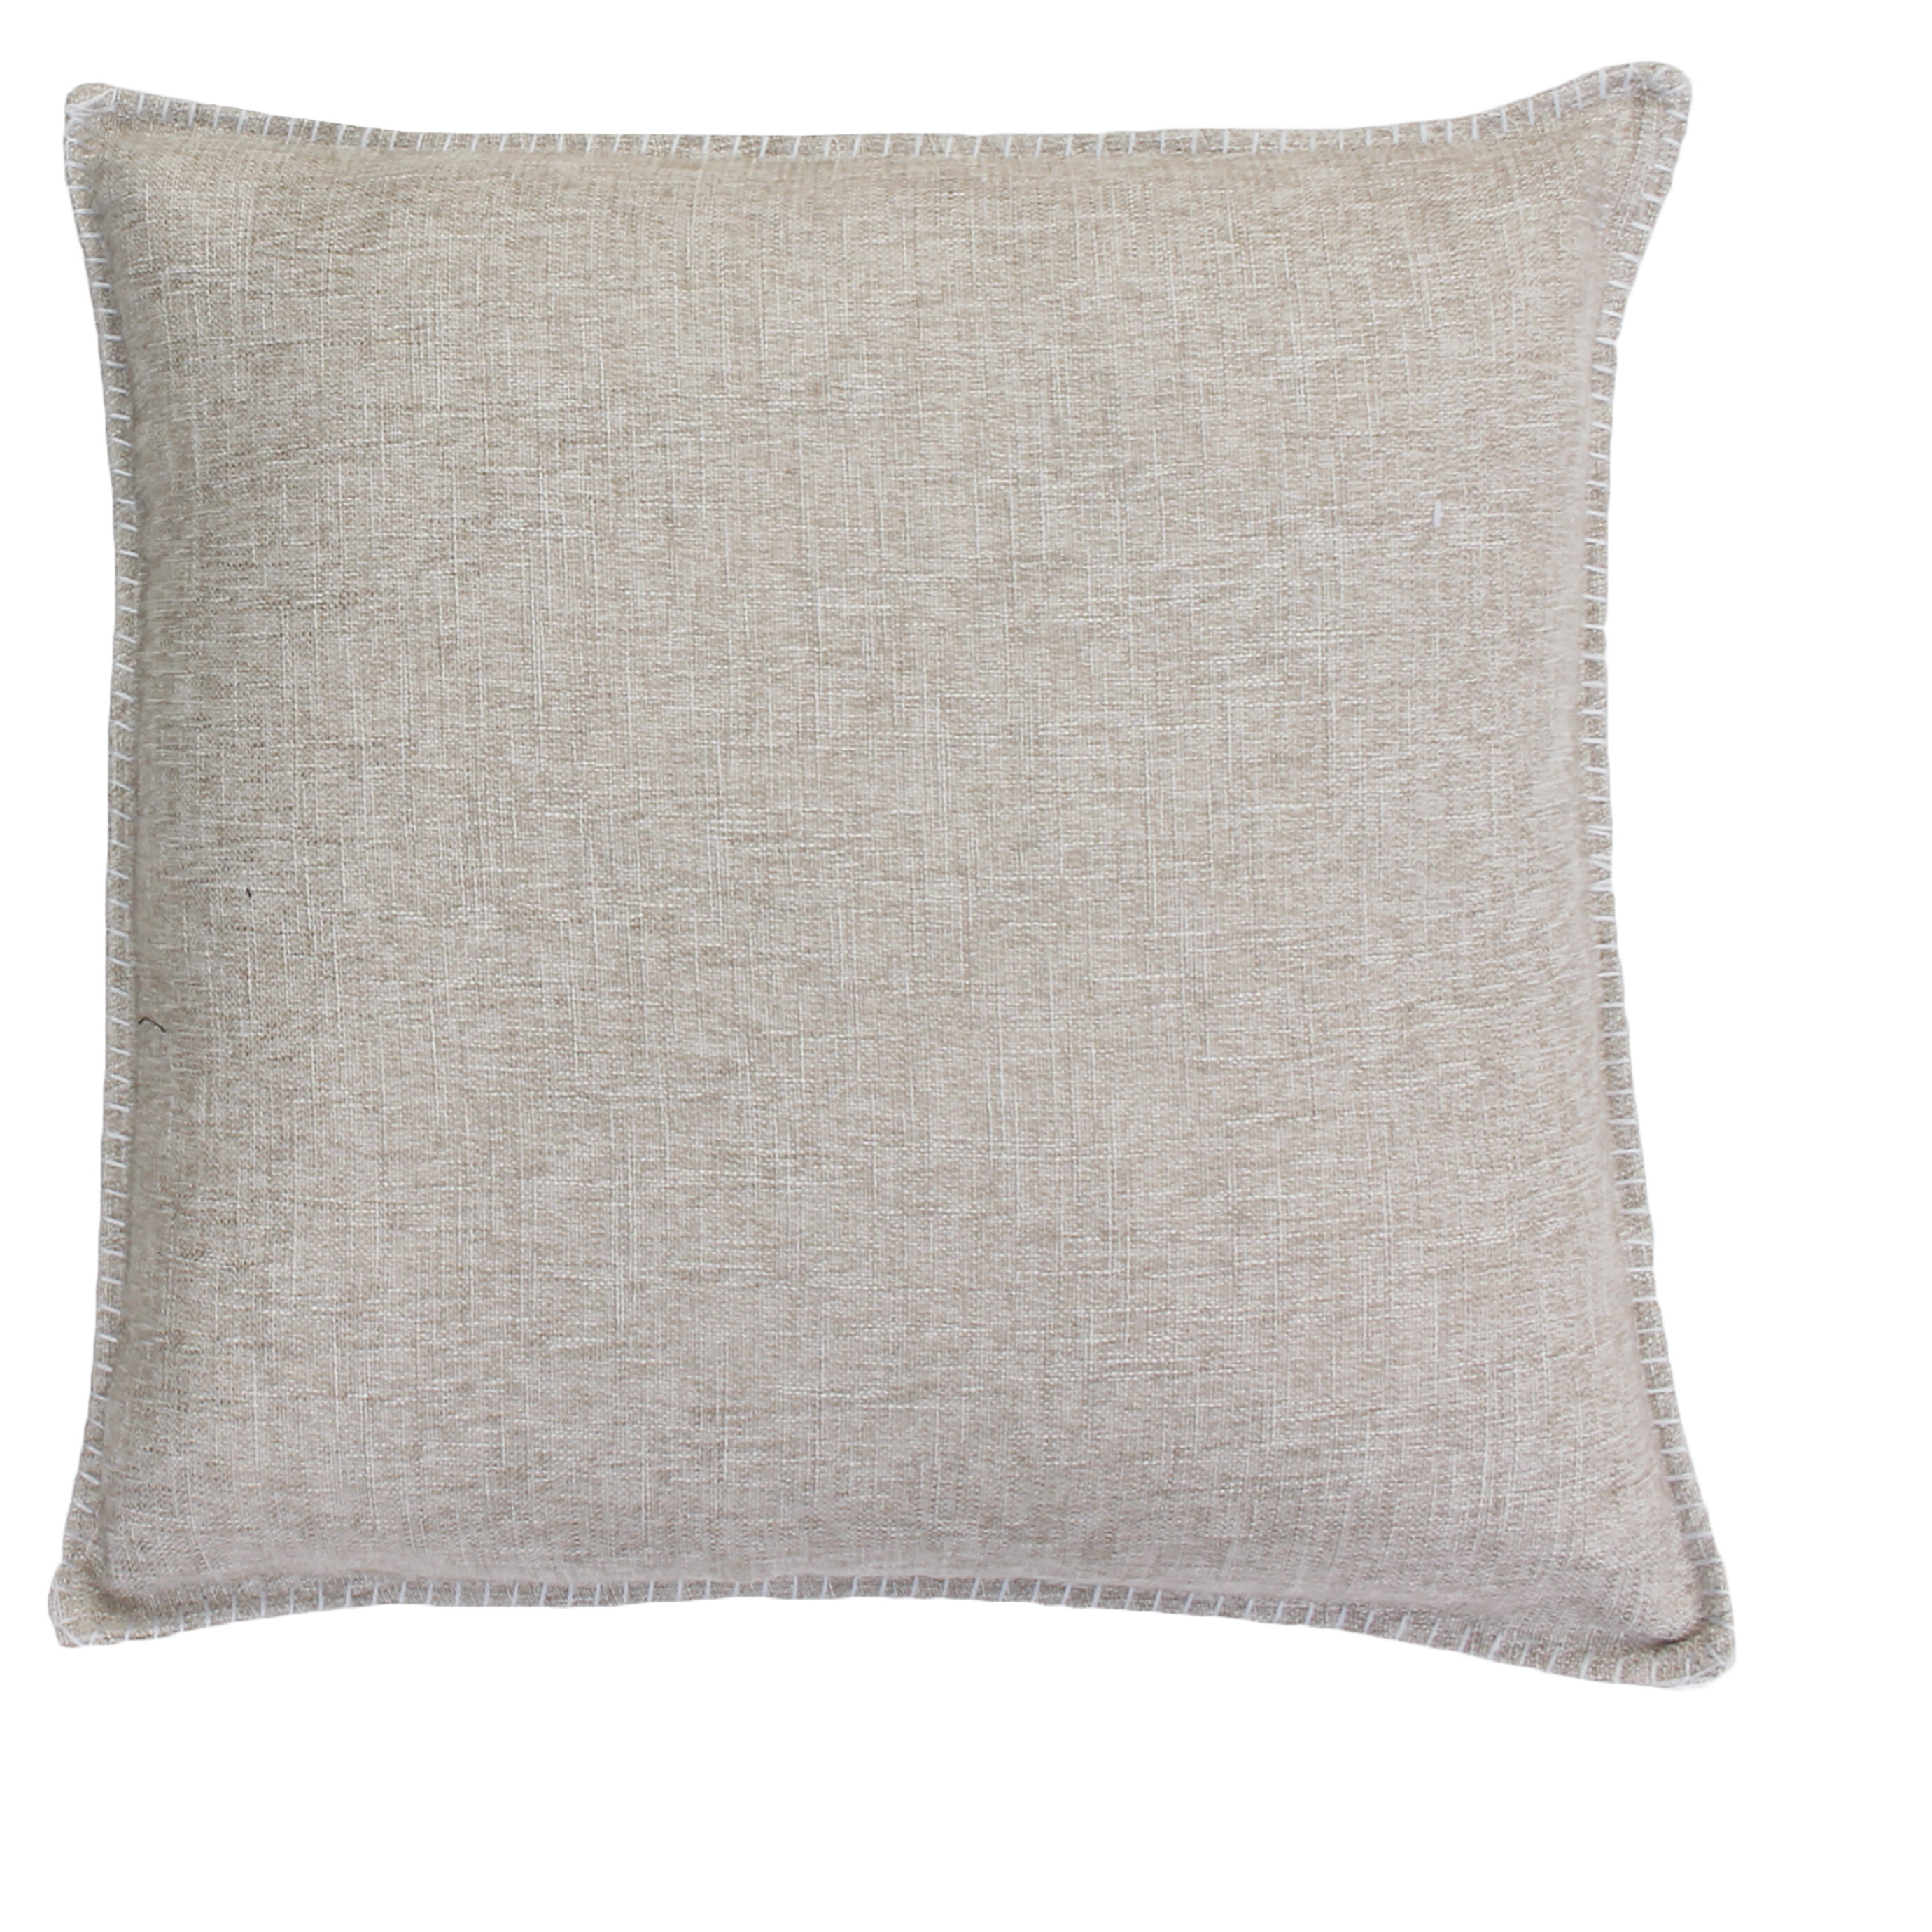 Hearth /& Hand Black /& White Tweed Throw Pillow Whipstiched Edge Accent Cushion